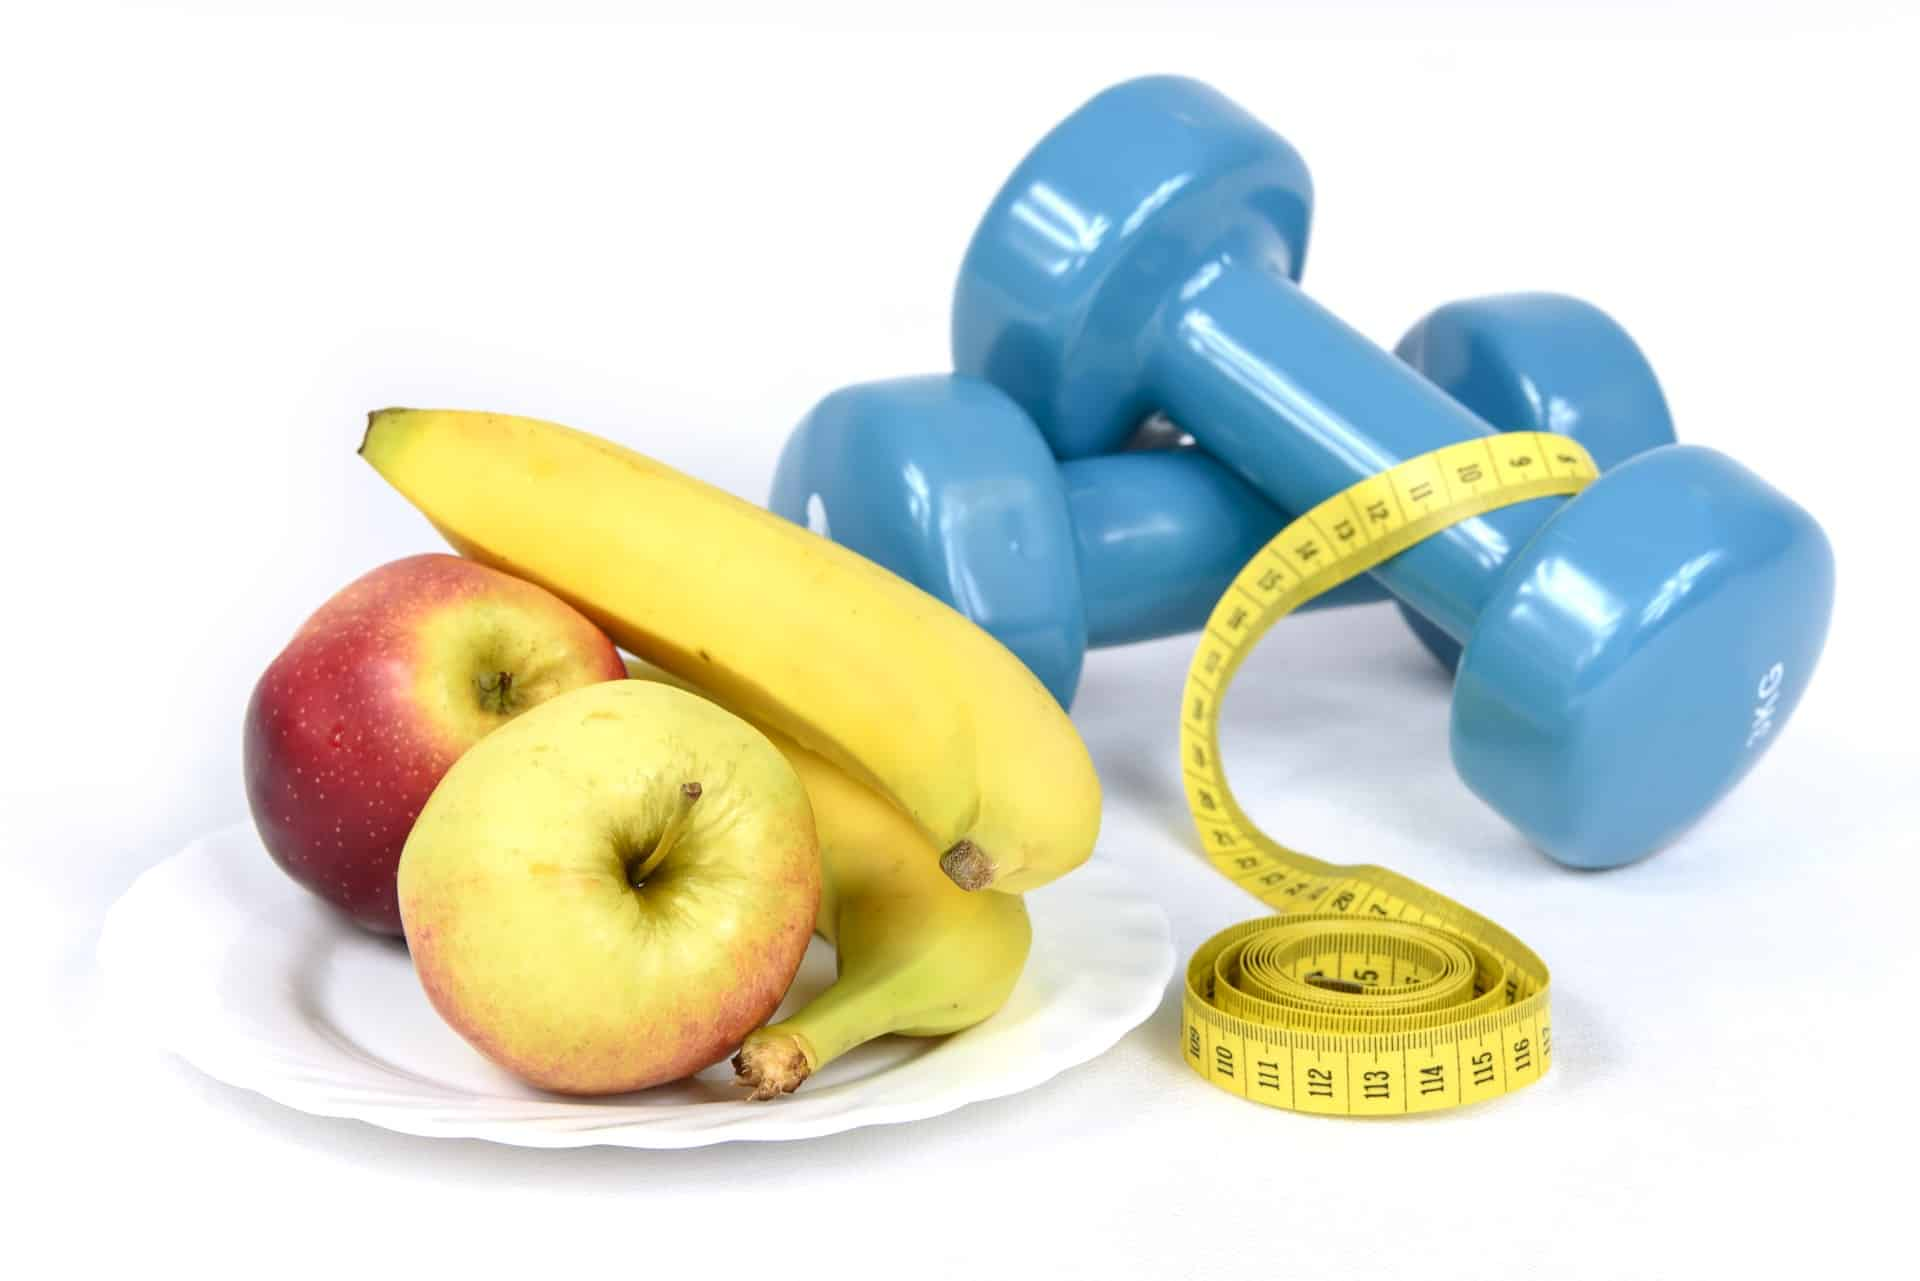 dumbbells and fruit on a plate